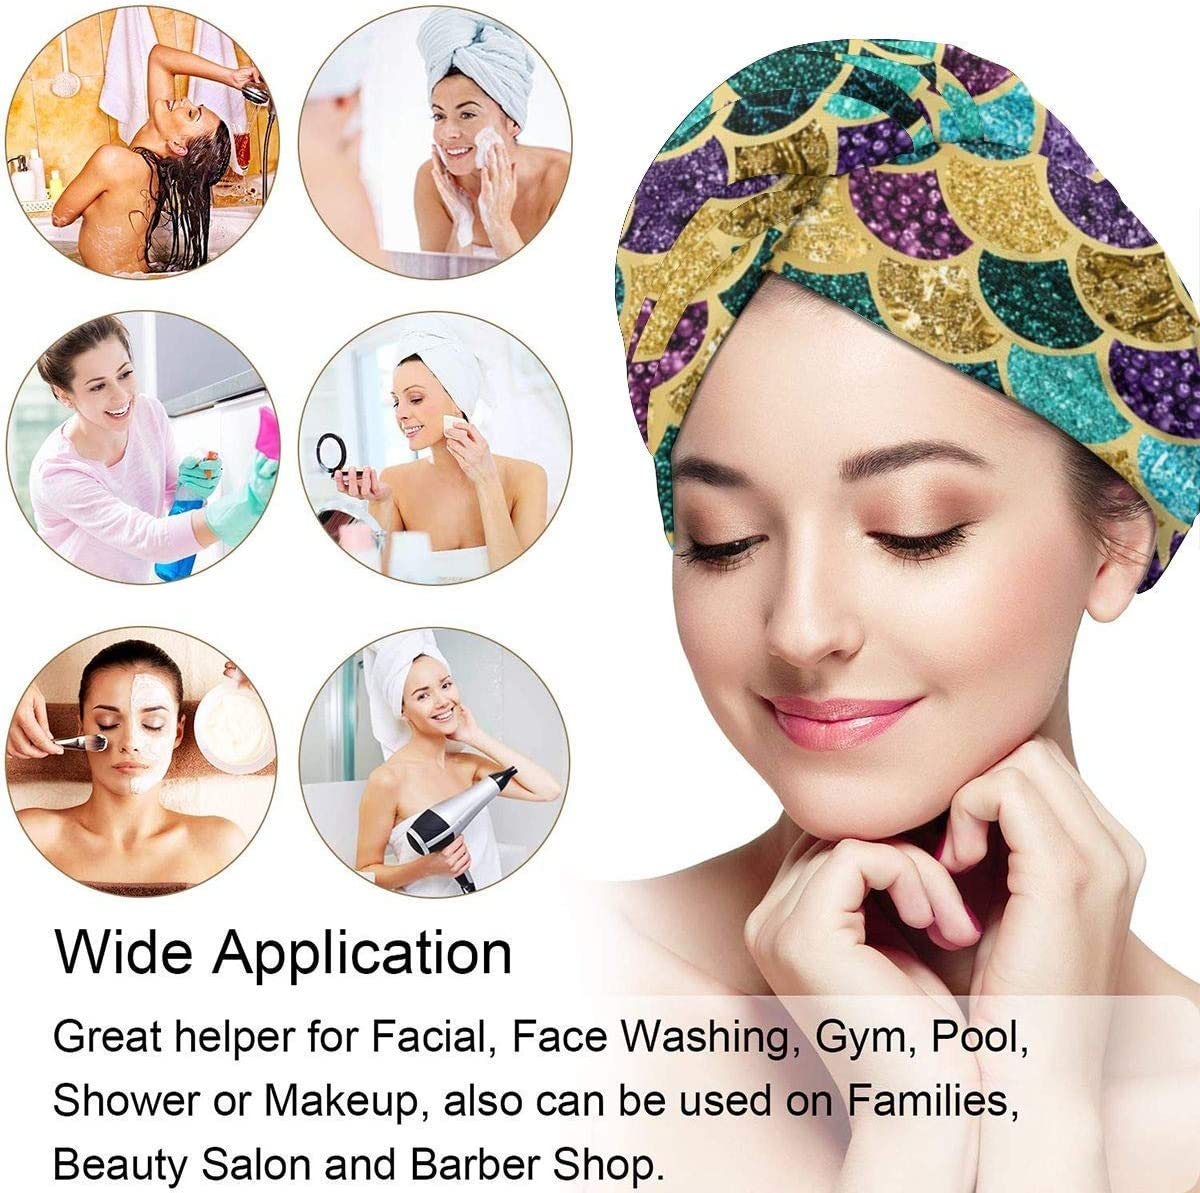 Envoltura de la cabeza del ba/ño,Chinese Silk with Golden Dragons and Flowers Quick Dry Hair Towel with Button Hair Dry Towel Hair Towel Wrap Turban Fast Head Towel Fast Drying Bath Shower